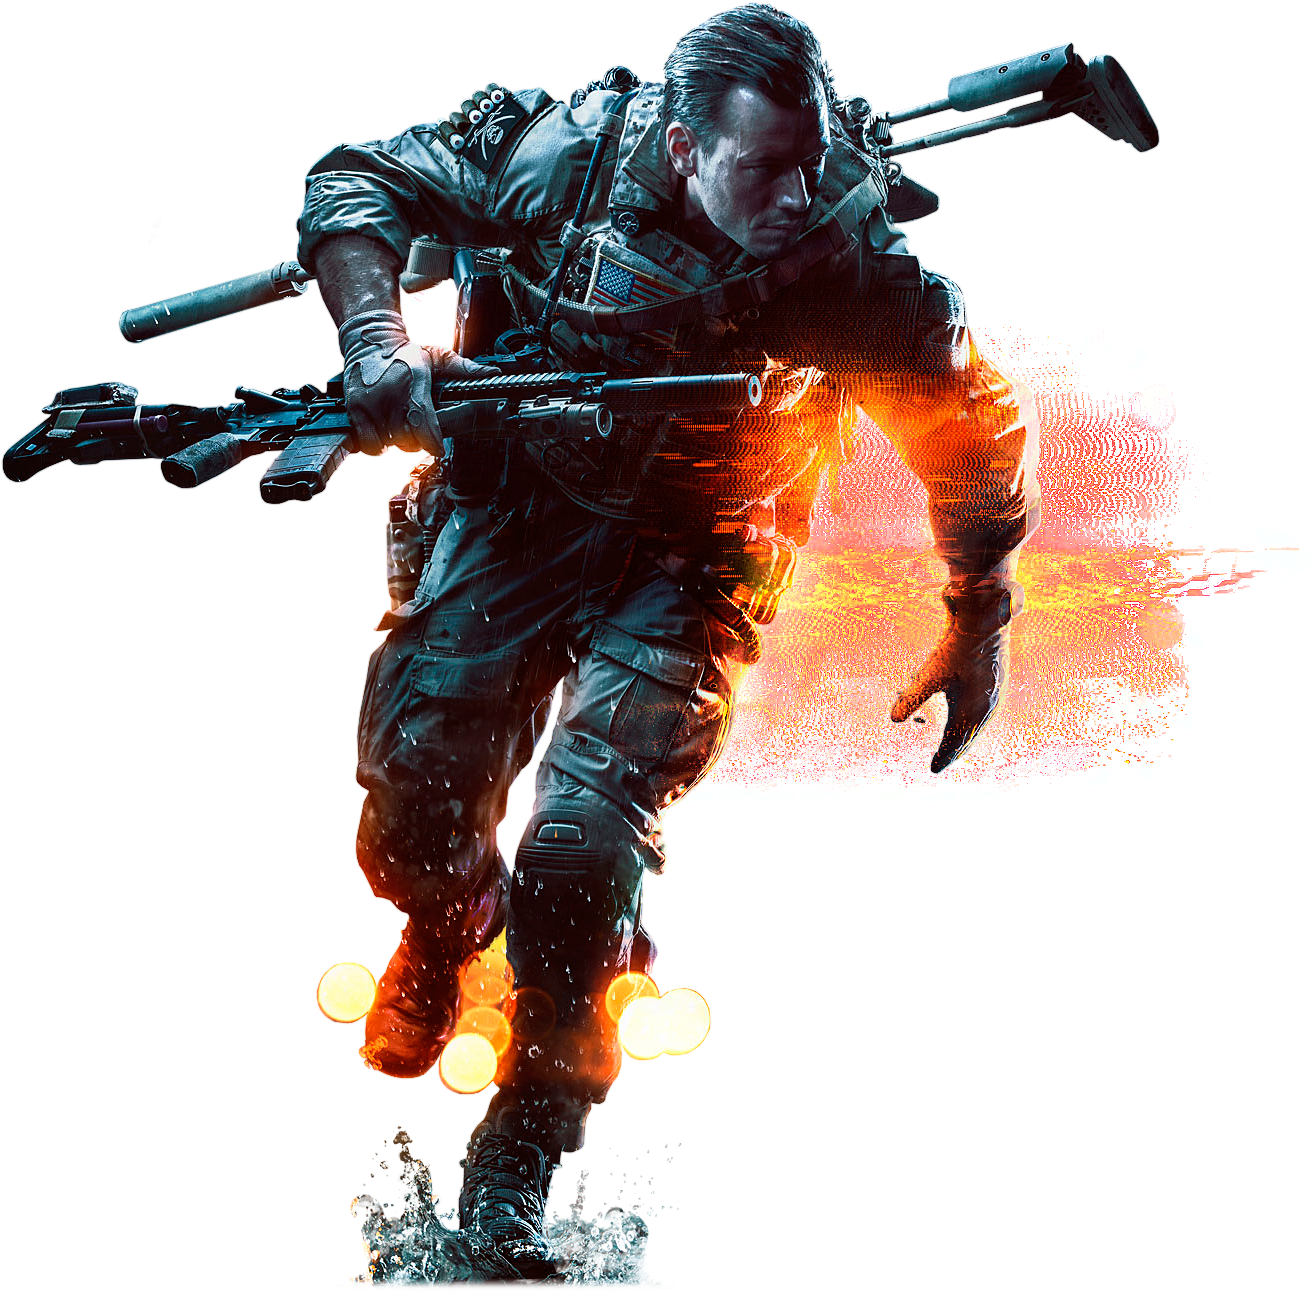 Battlefield 1 png. Hd transparent images pluspng